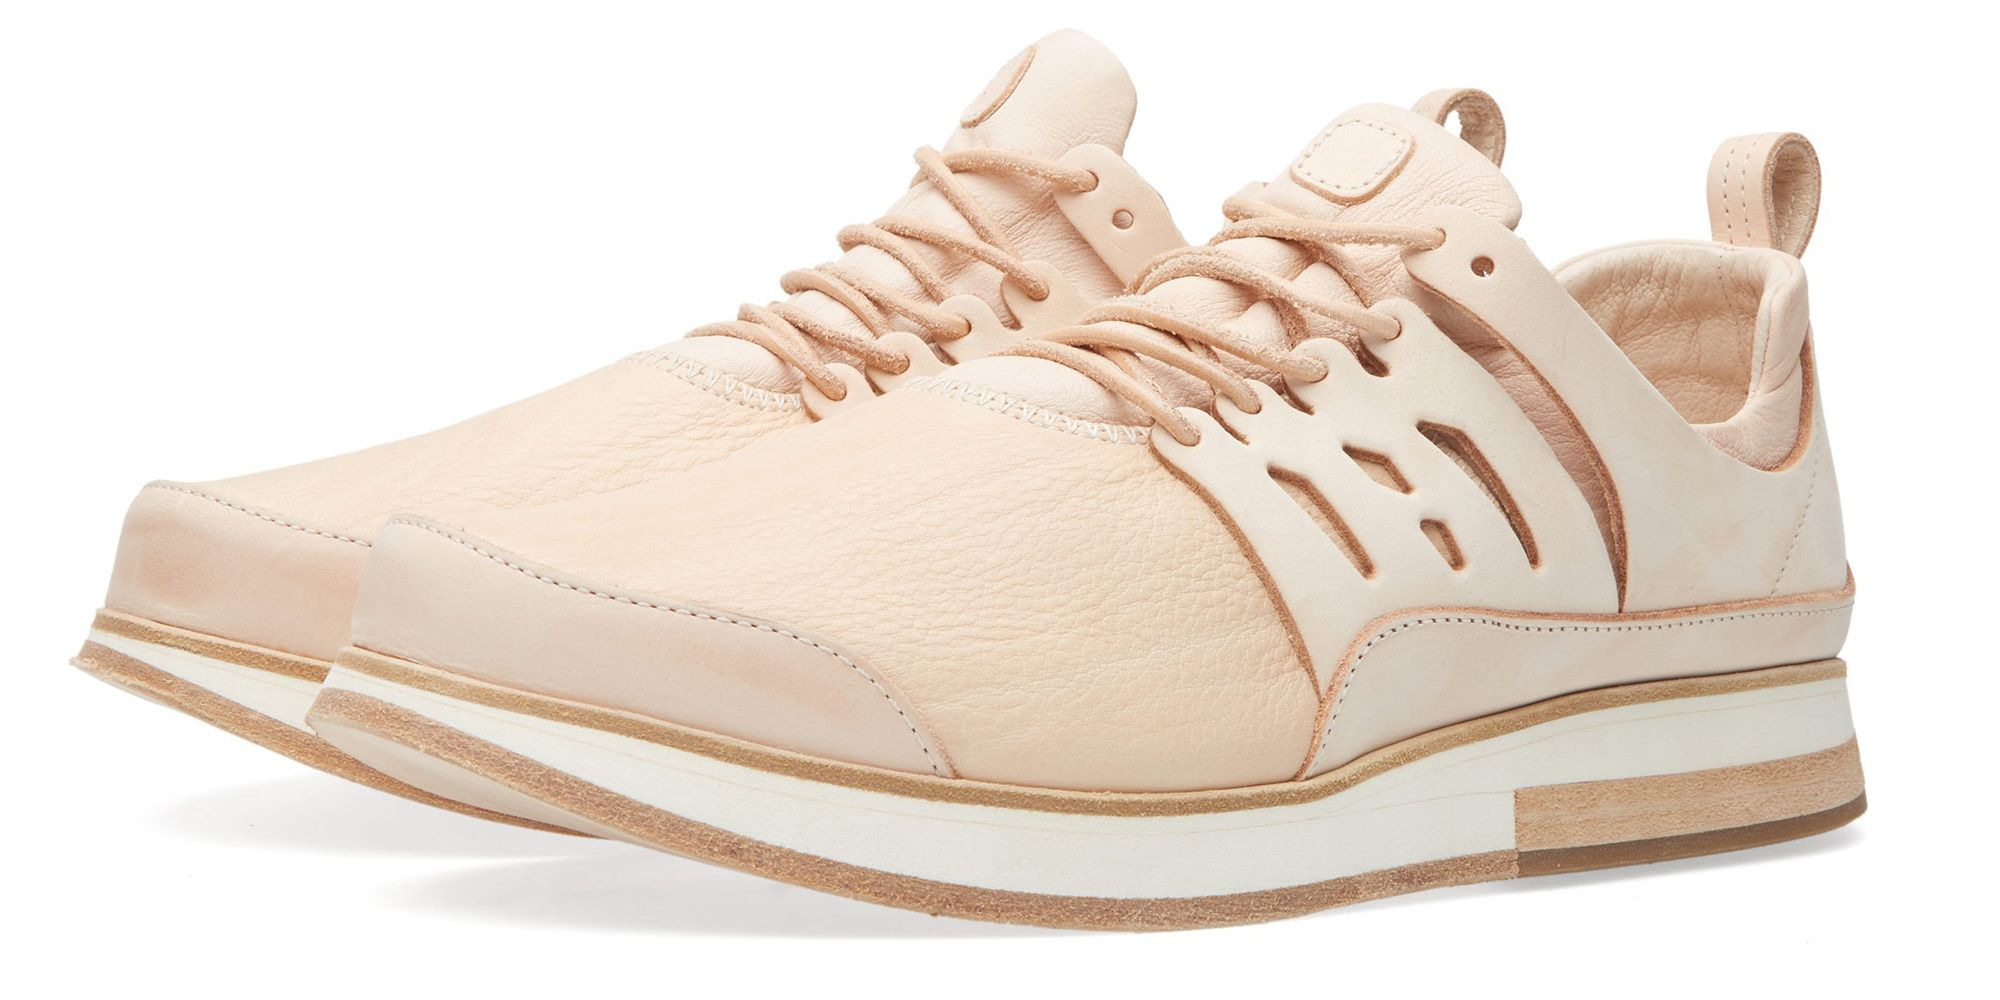 The Footwear Fix: Hender Scheme MIP-12 Sneakers